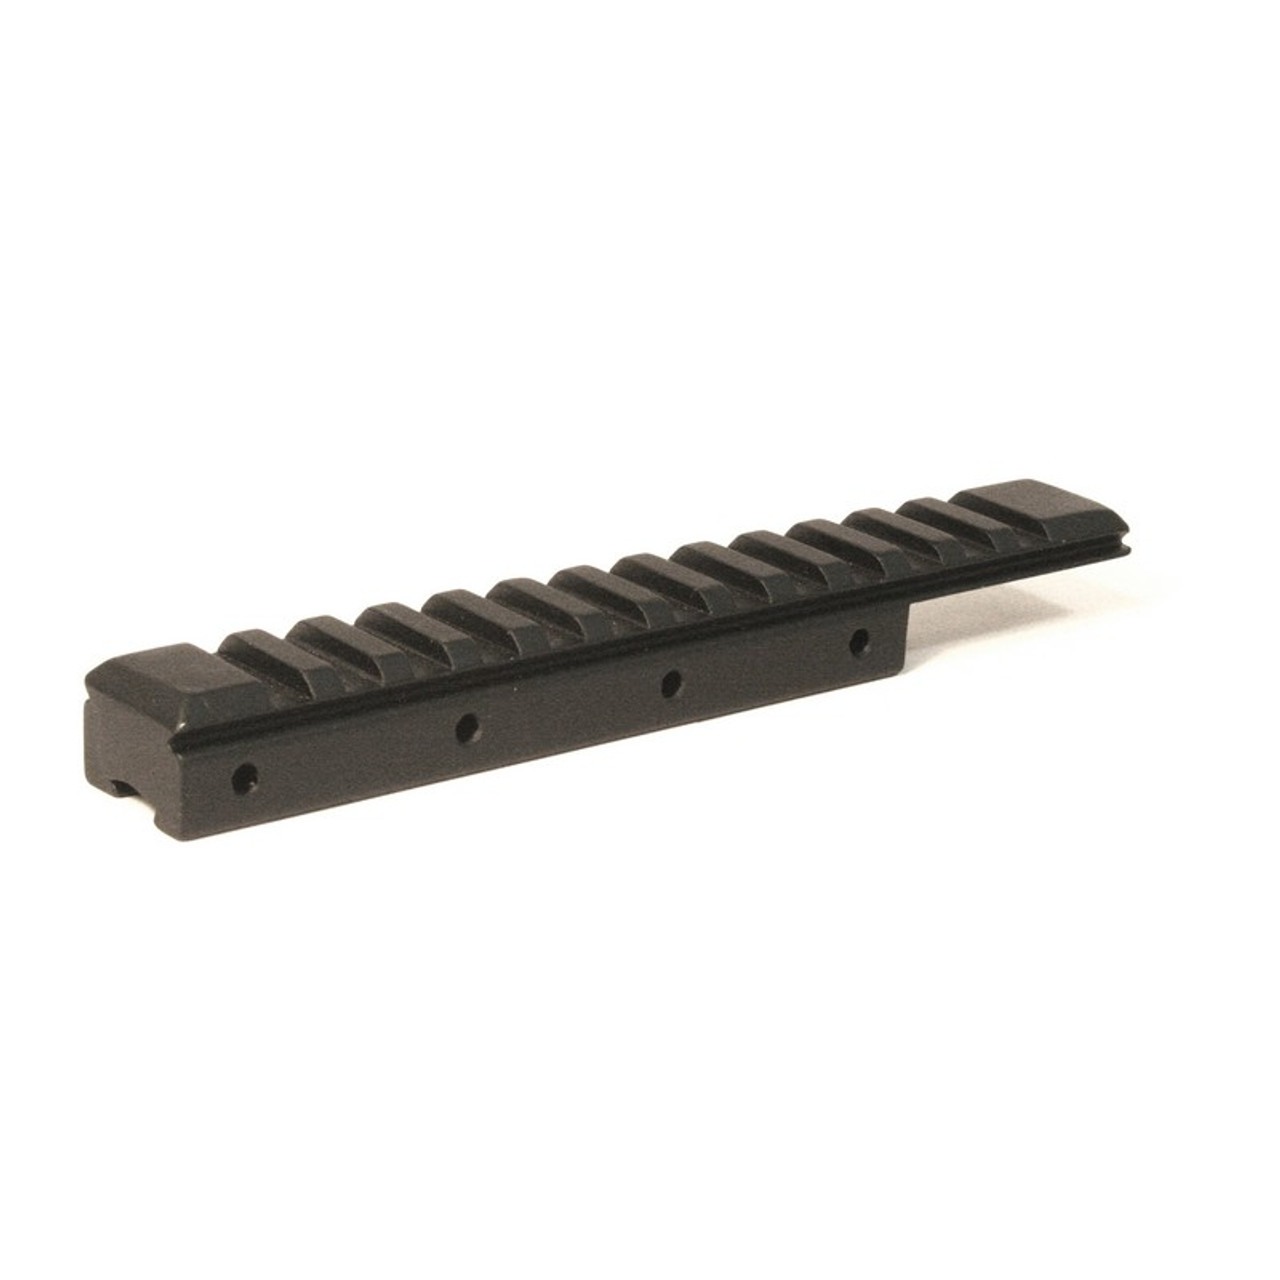 Best price for Hawke 1 Piece Picantiny Adaptor 11mm - HM17015, on sale from Bradford Stalker